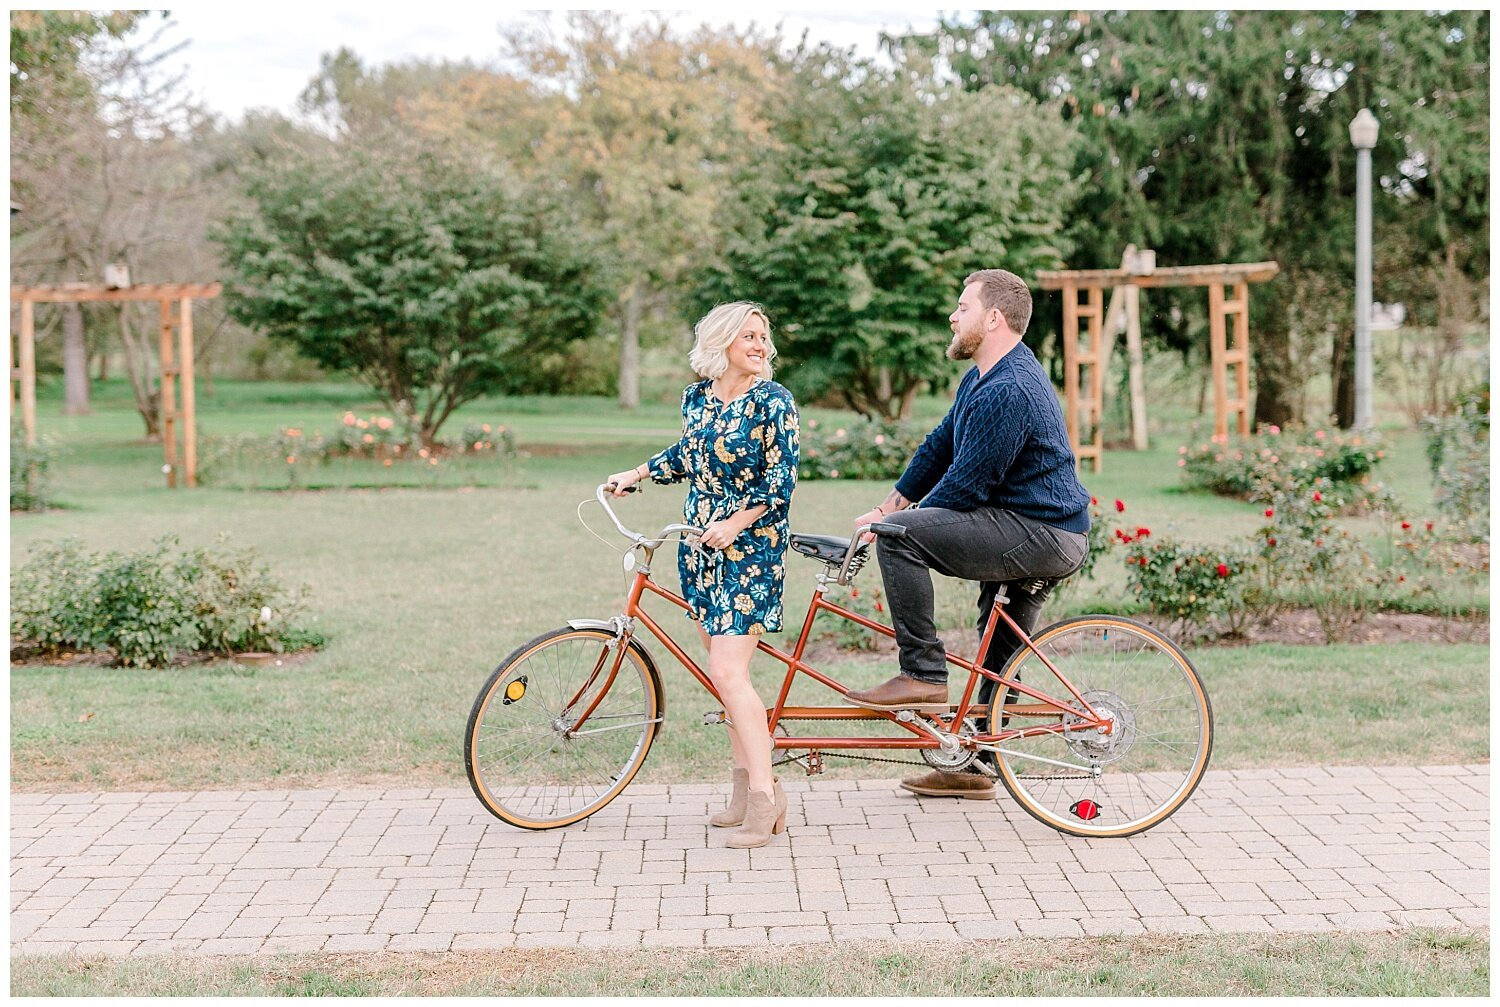 Allentown rose garden sunset engagement session with a tandem bike by lehigh valley pennsylvania based wedding and lifestyle photographer Jeannie Lytle of Lytle Photography Company_0003.jpg